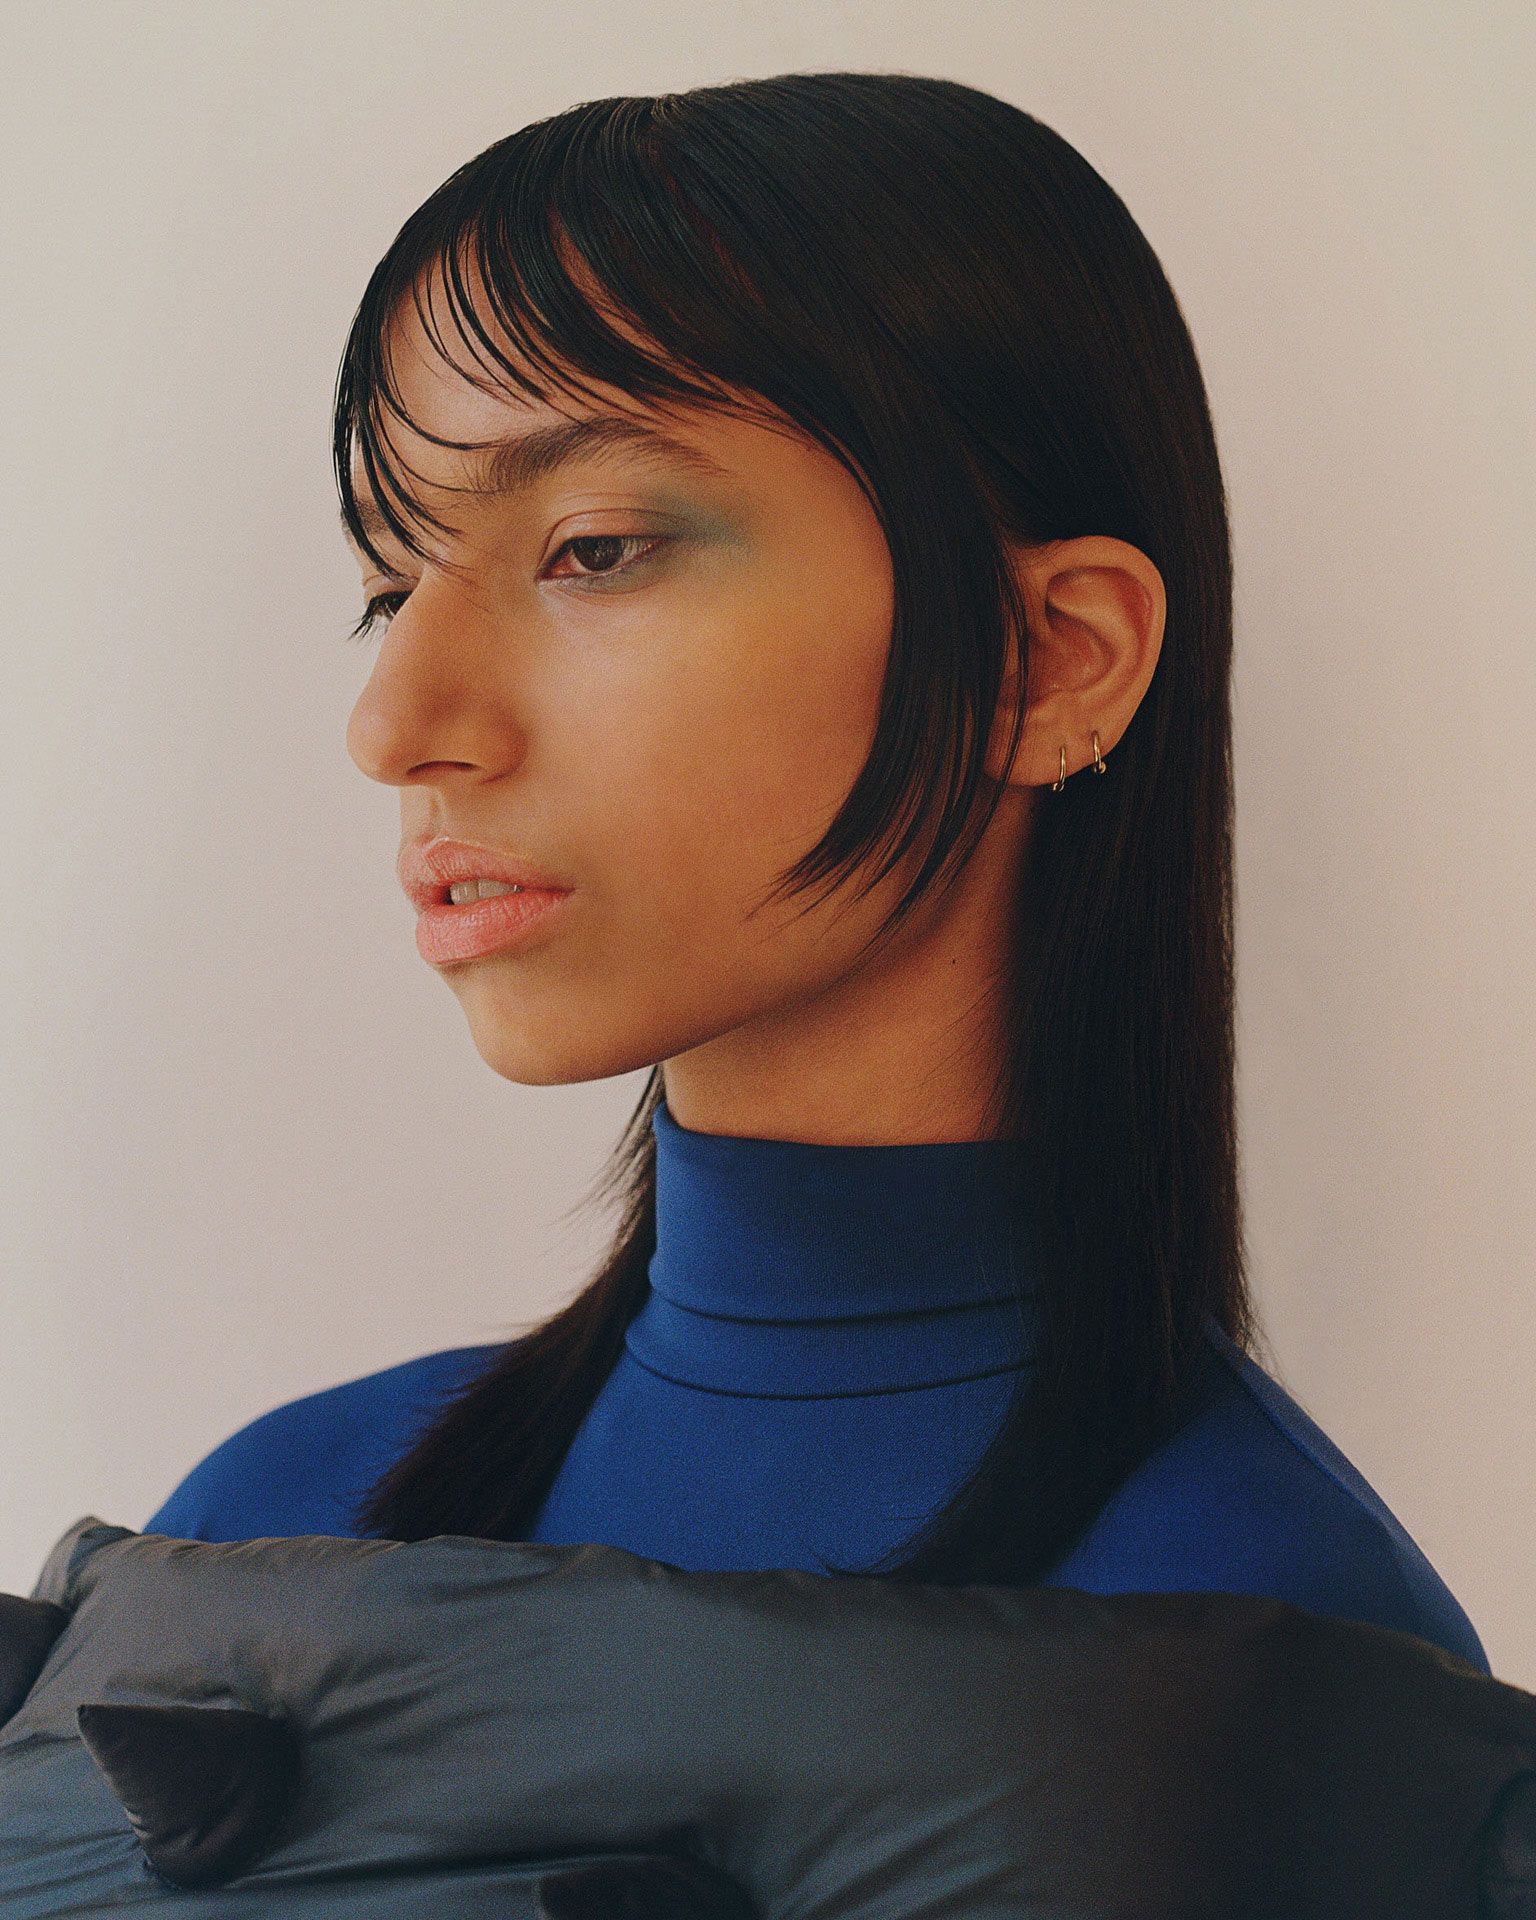 black haired female model wearing turquoise makeup blue turtleneck and black puffy spiked coat photographed by Oumayma B Tanfous for Moncler as a story for Document Journal magazine